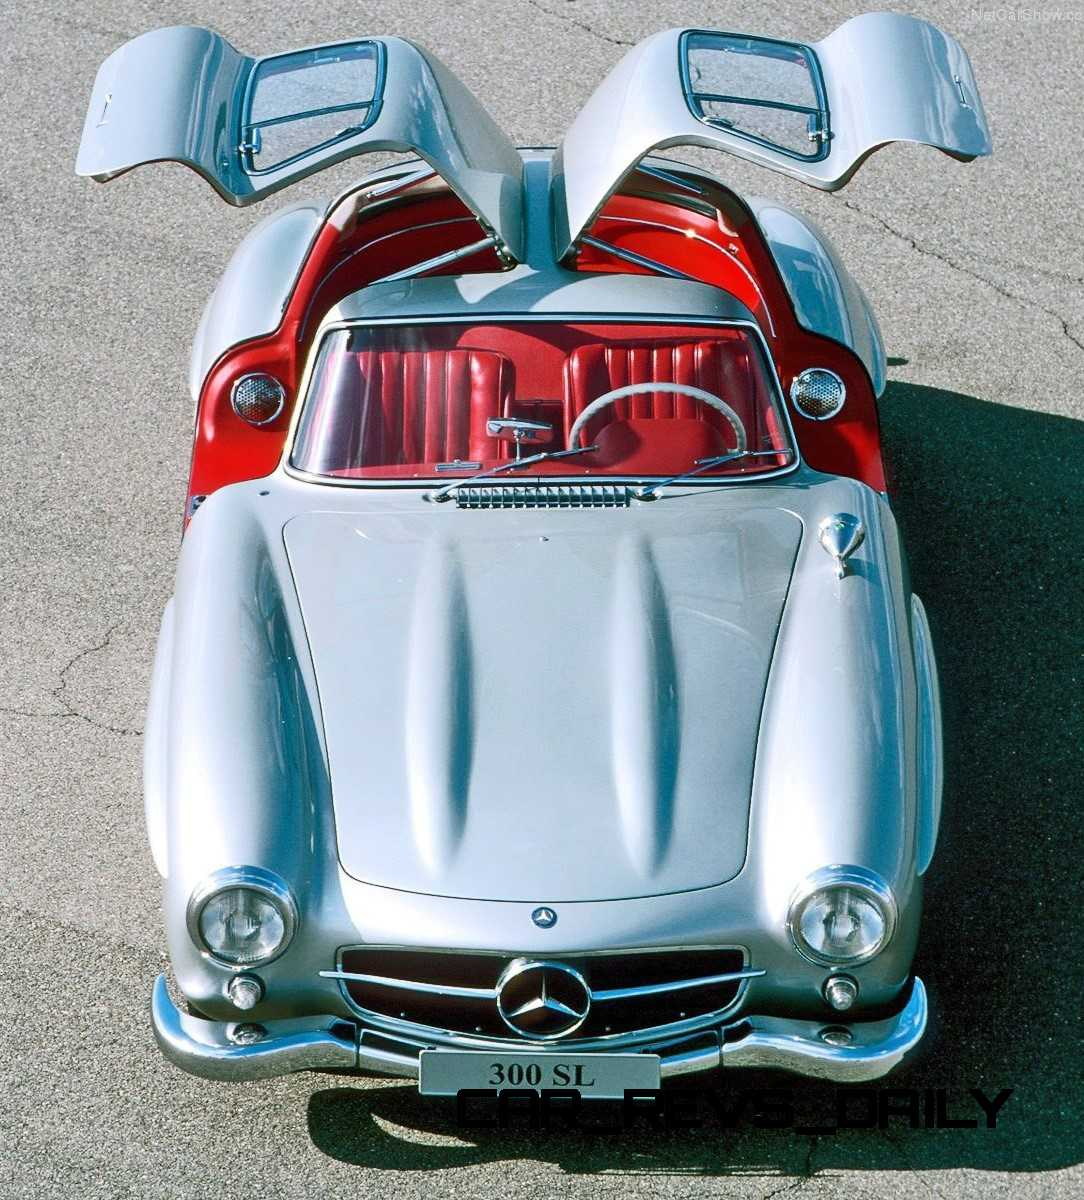 Mercedes-Benz Gullwing Supercar Evolution 68 copy